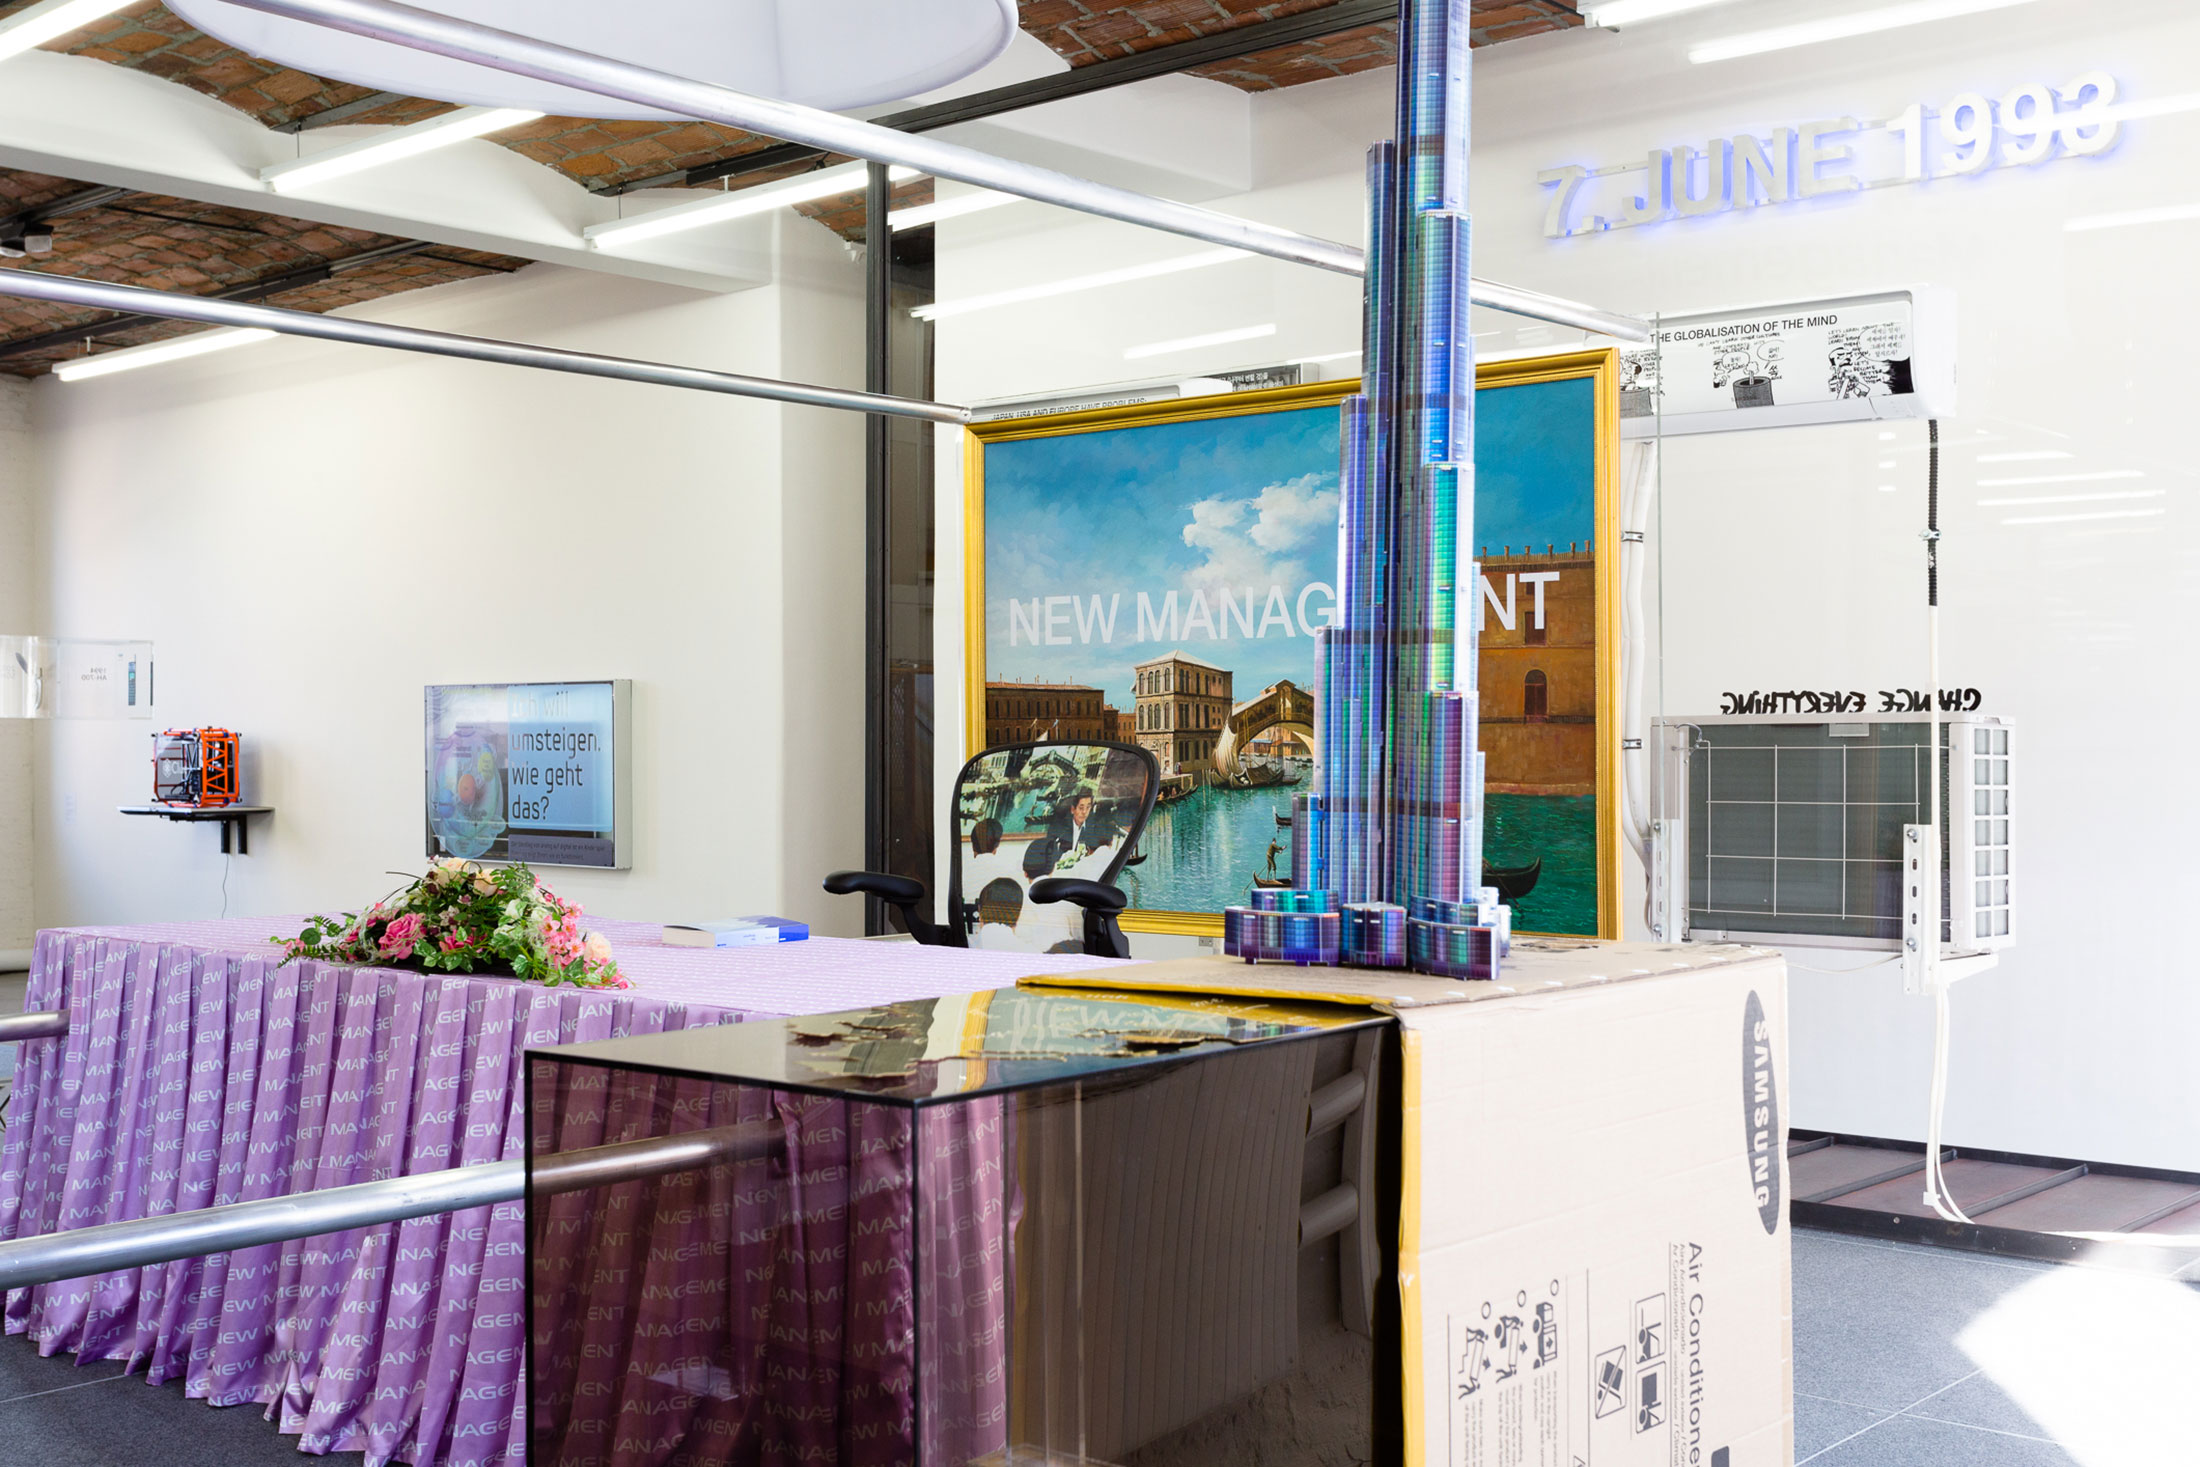 """Installation view of """"Simon Denny: The Innovator's Dilemma"""" at MoMA PS1 in 2015. (Photo: Pablo Enriquez/Courtesy the artist and MoMA PS1)"""